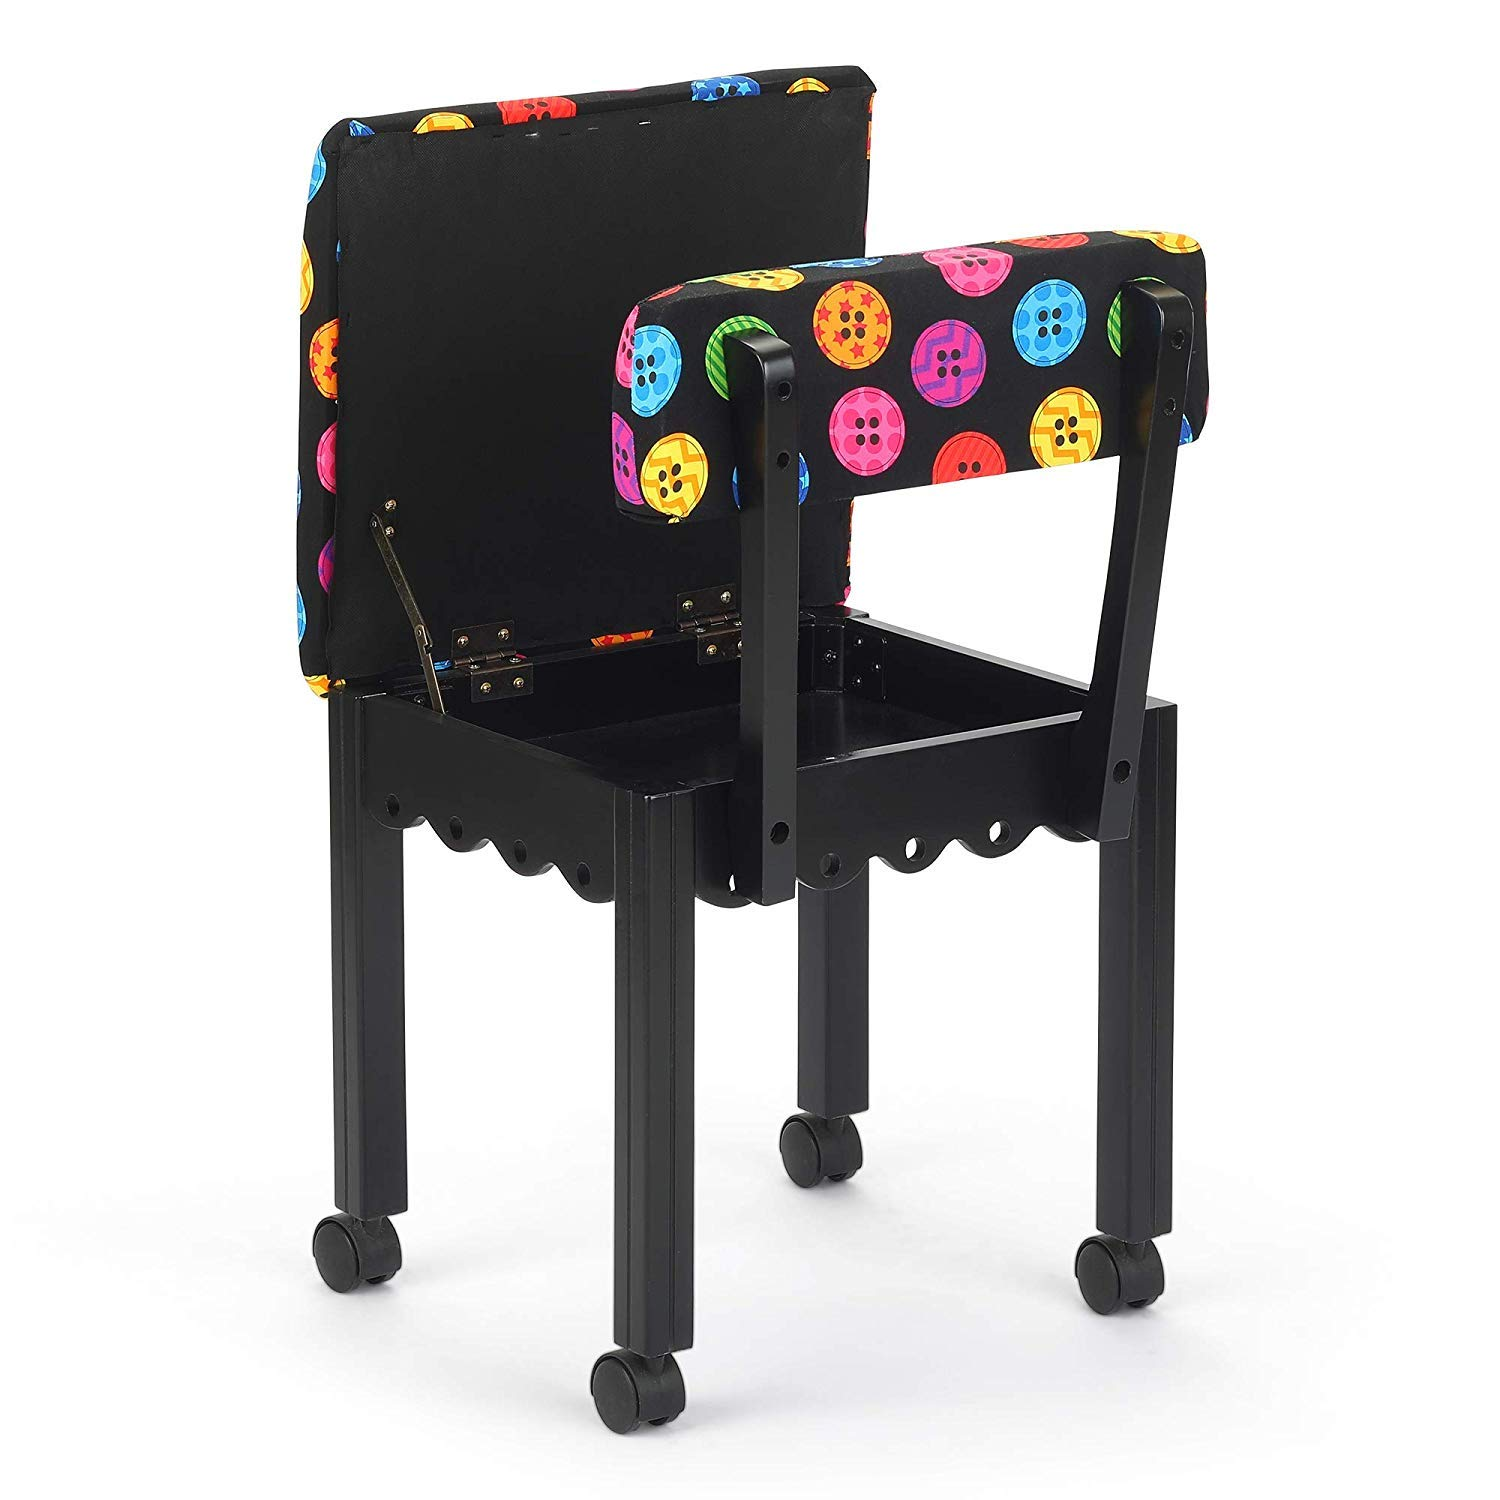 Arrow Sewing Chair in Black with Button Fabric by Arrow (Image #2)